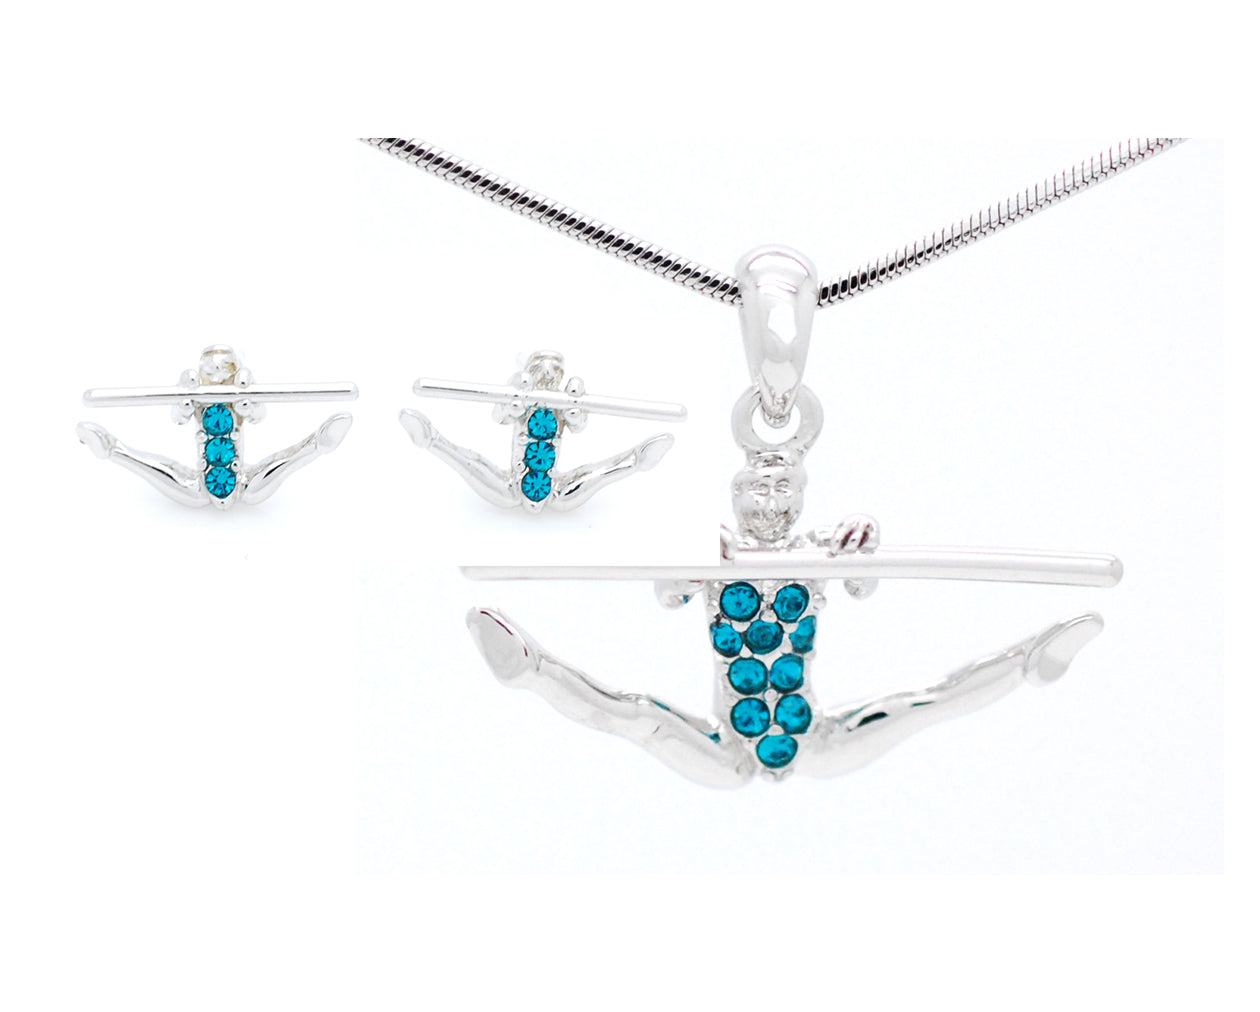 Gymnast Necklace & POST Earring Set - Uneven Bars